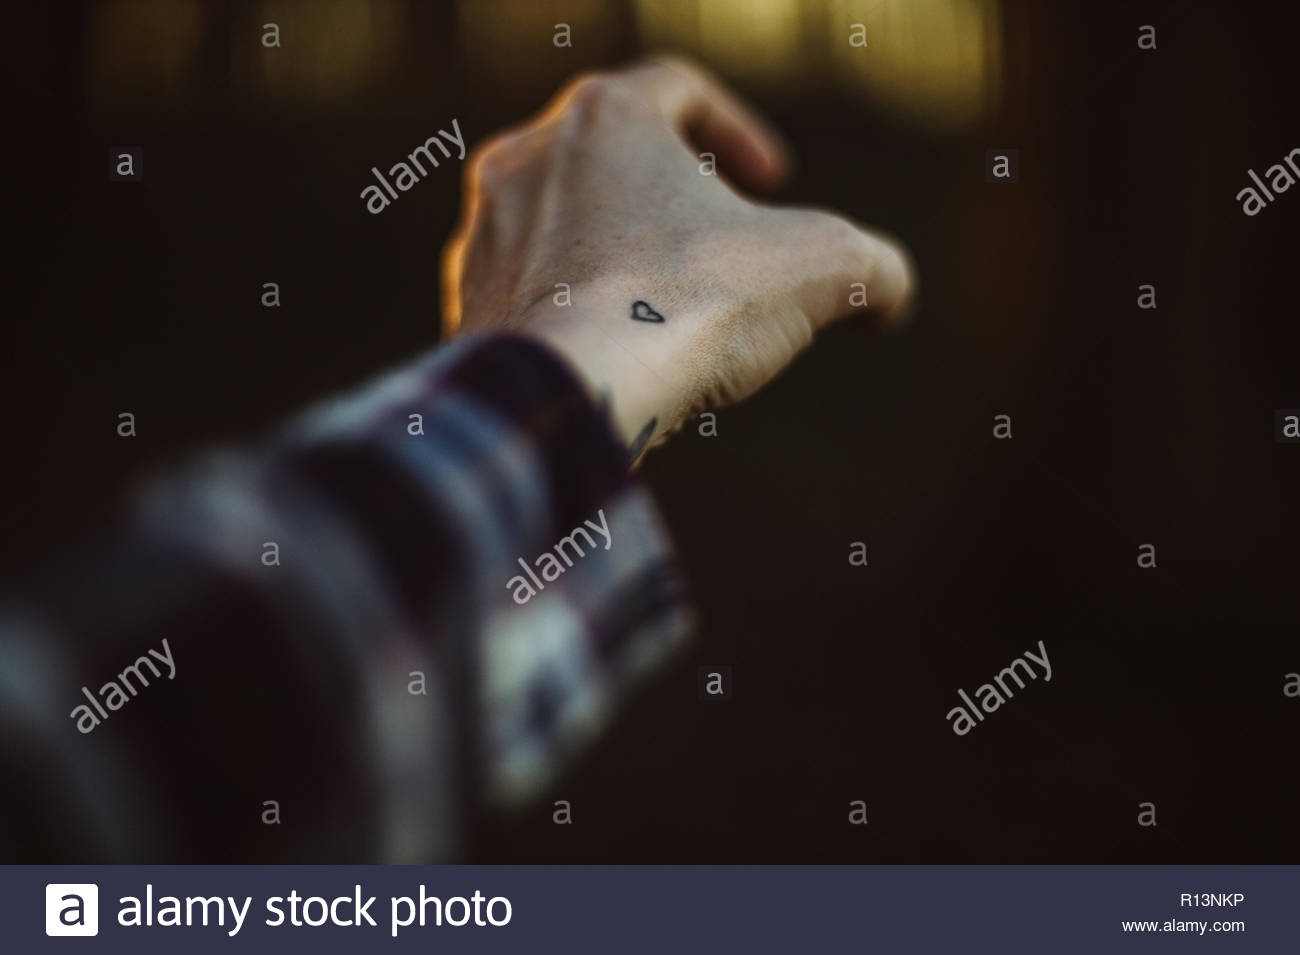 Close-up shot of a hand - Stock Image